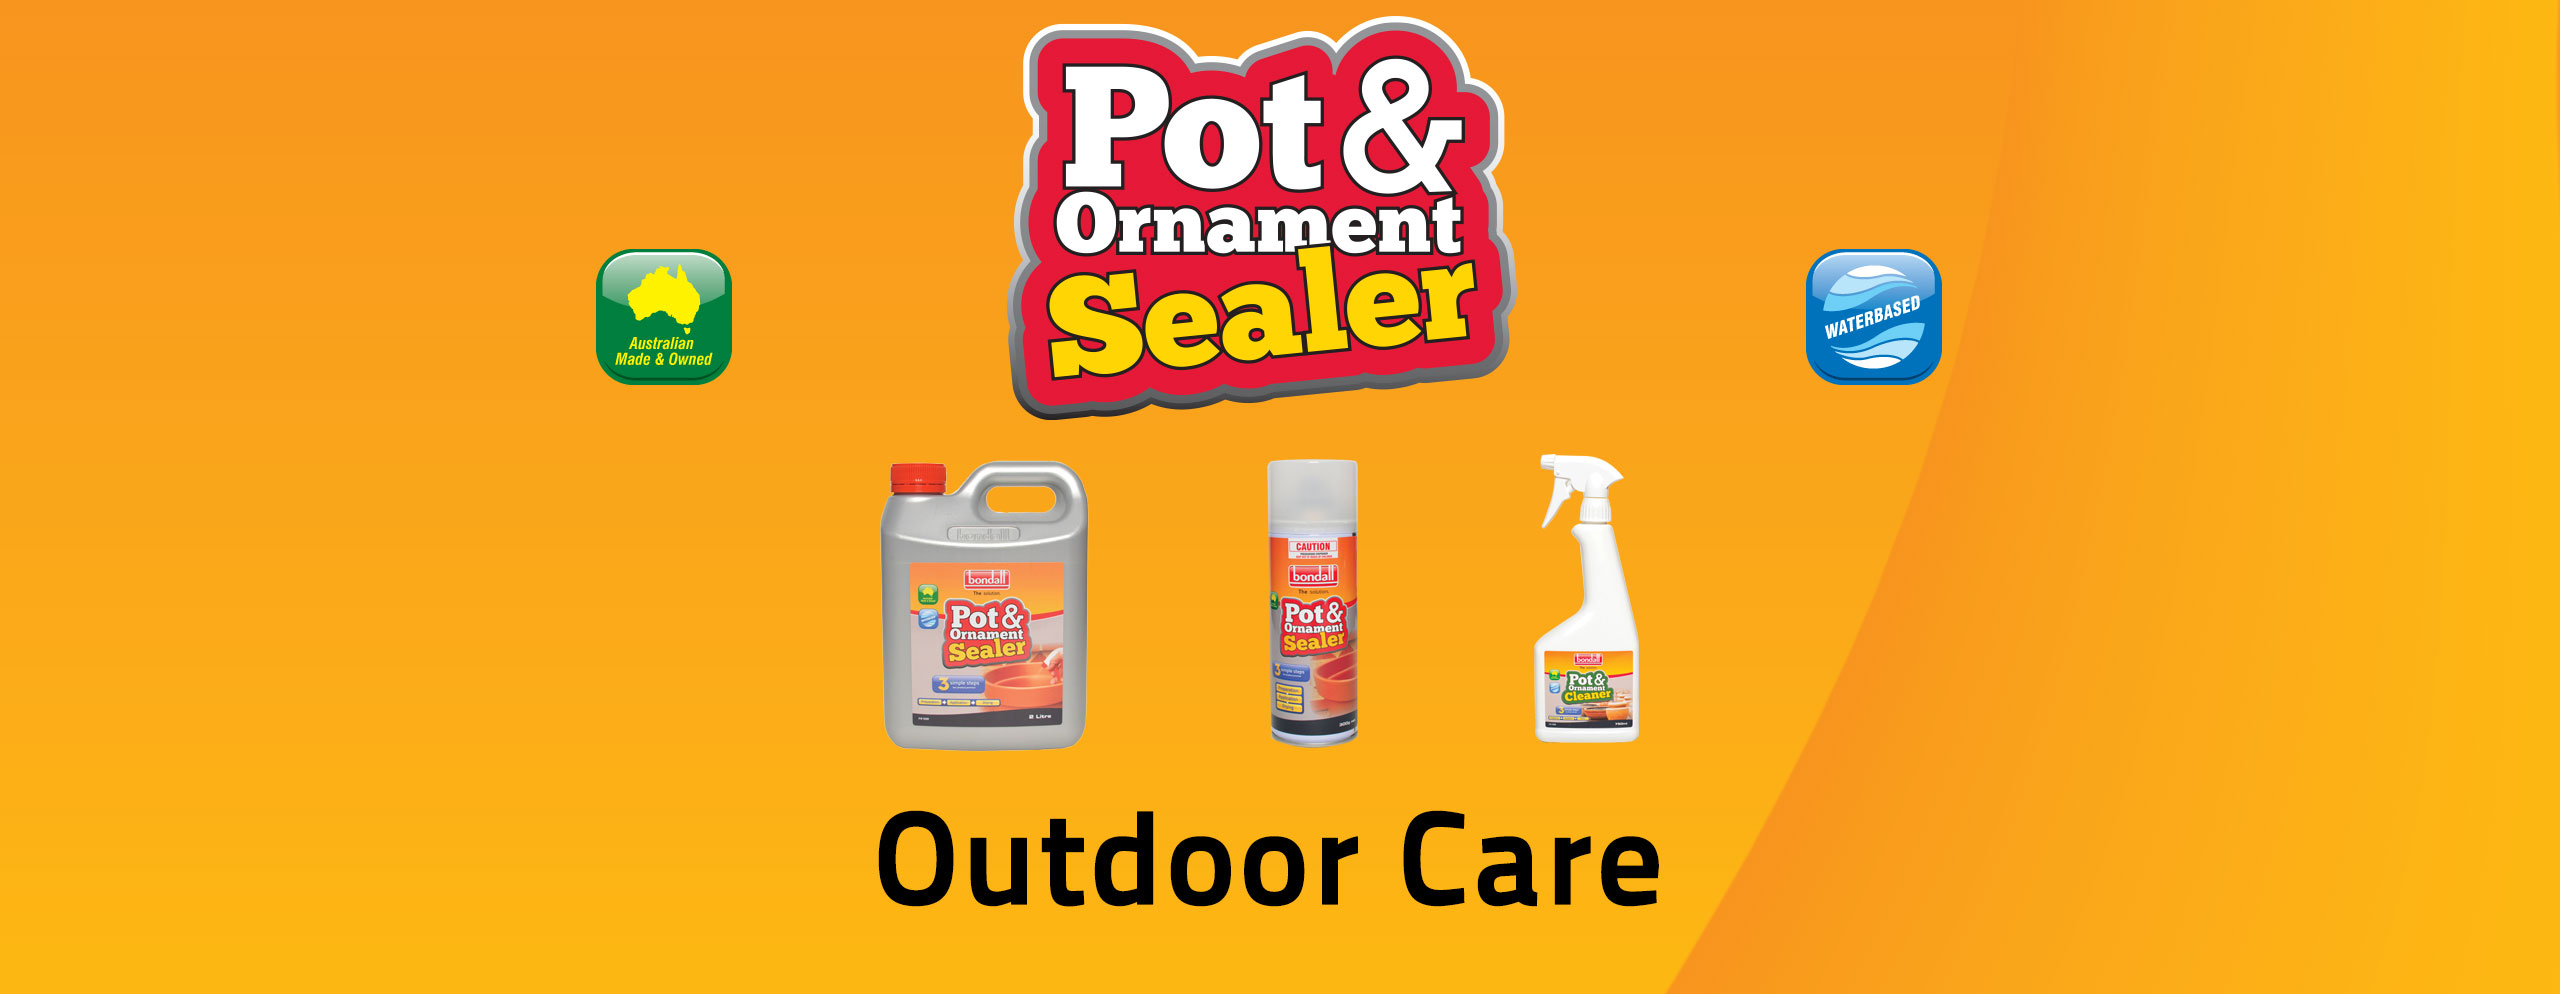 Outdoor Care